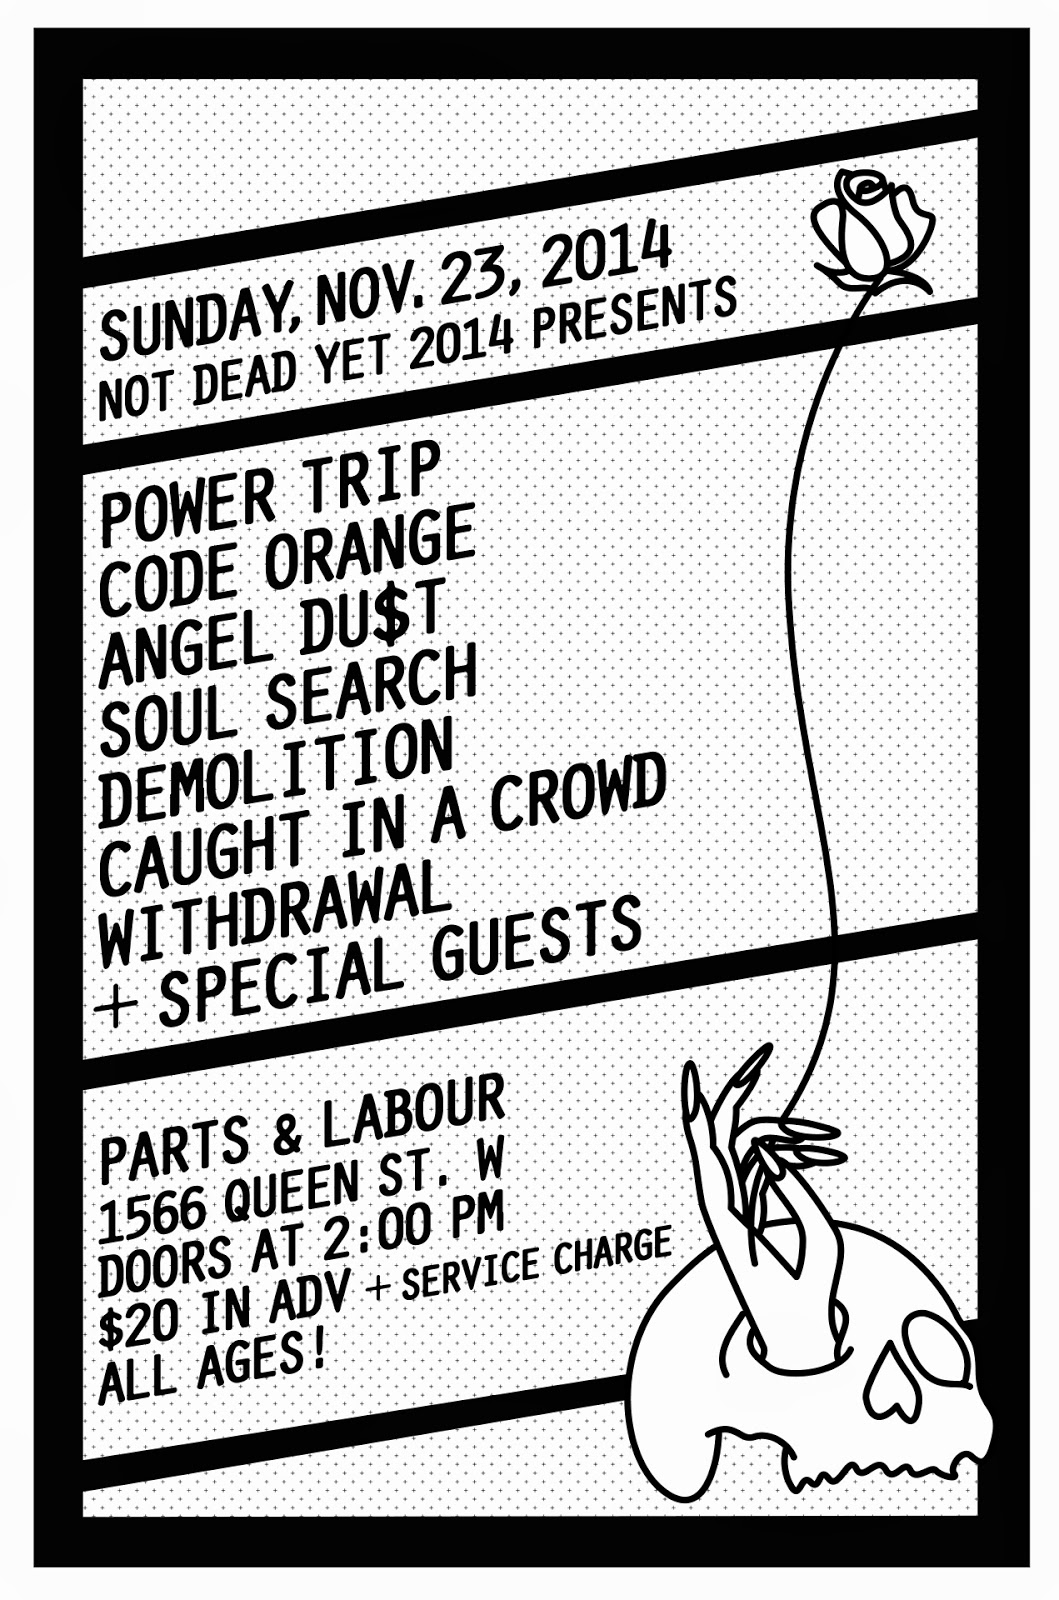 Flyer sunday november 23rd 2014